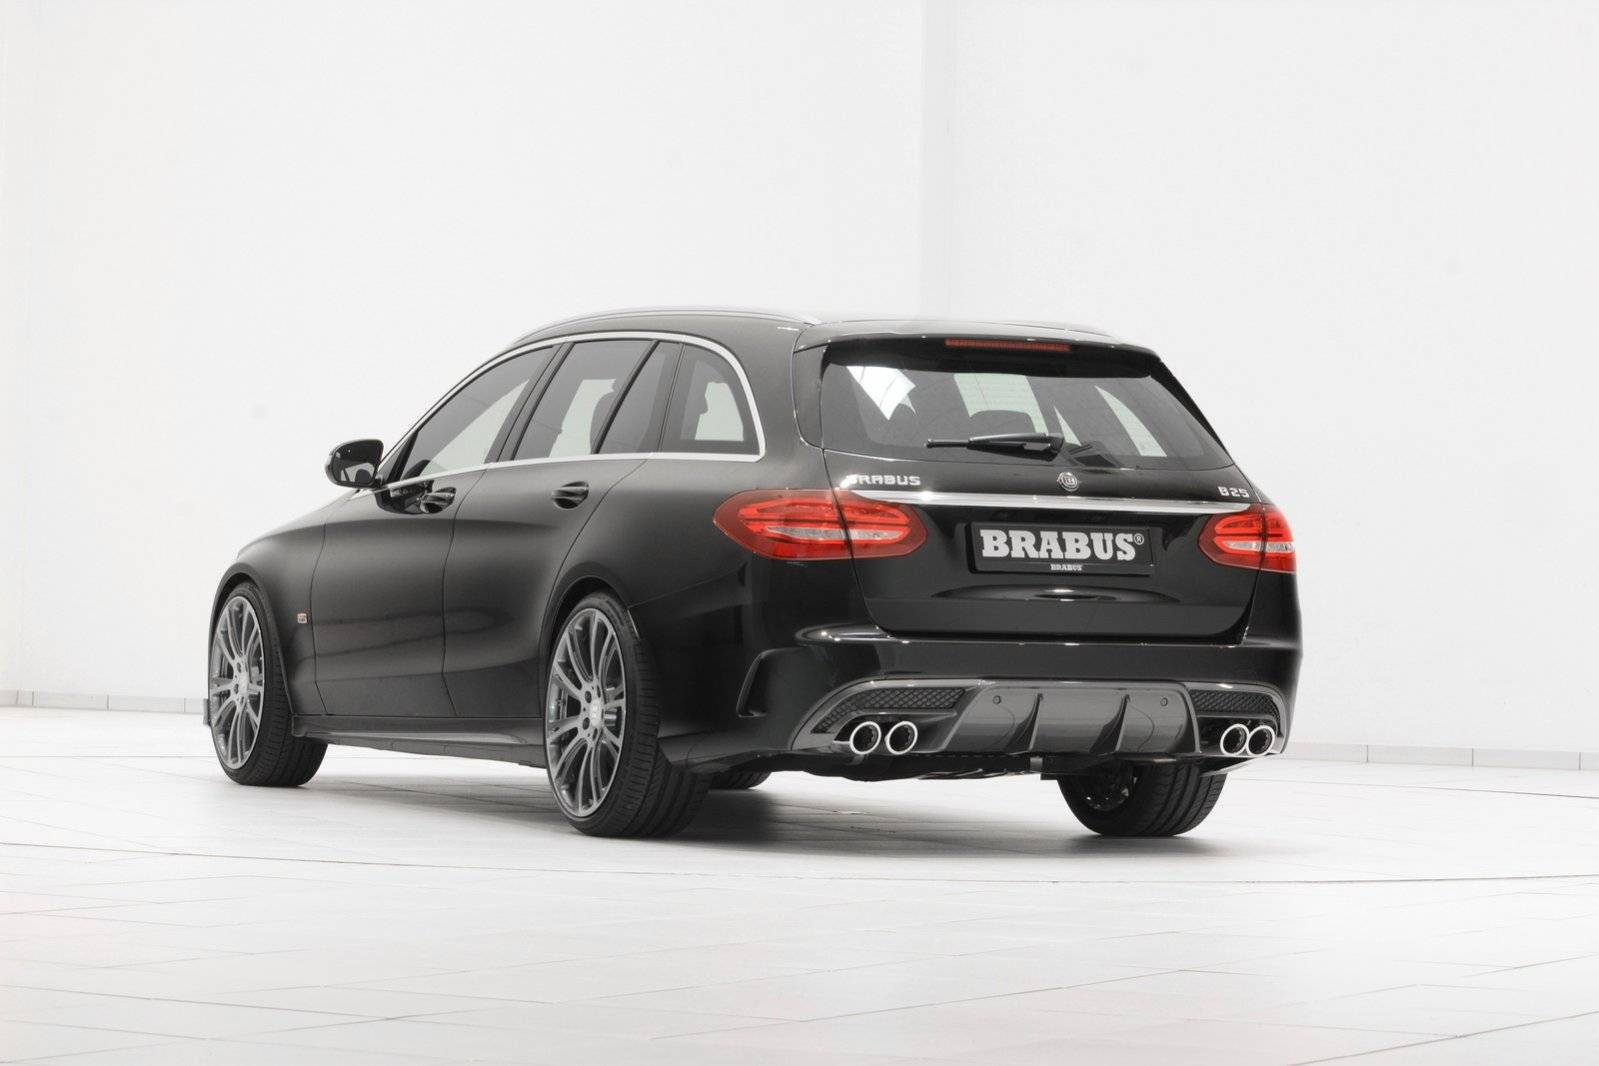 brabus sportiviteit voor mercedes c klasse estate tuning styling. Black Bedroom Furniture Sets. Home Design Ideas